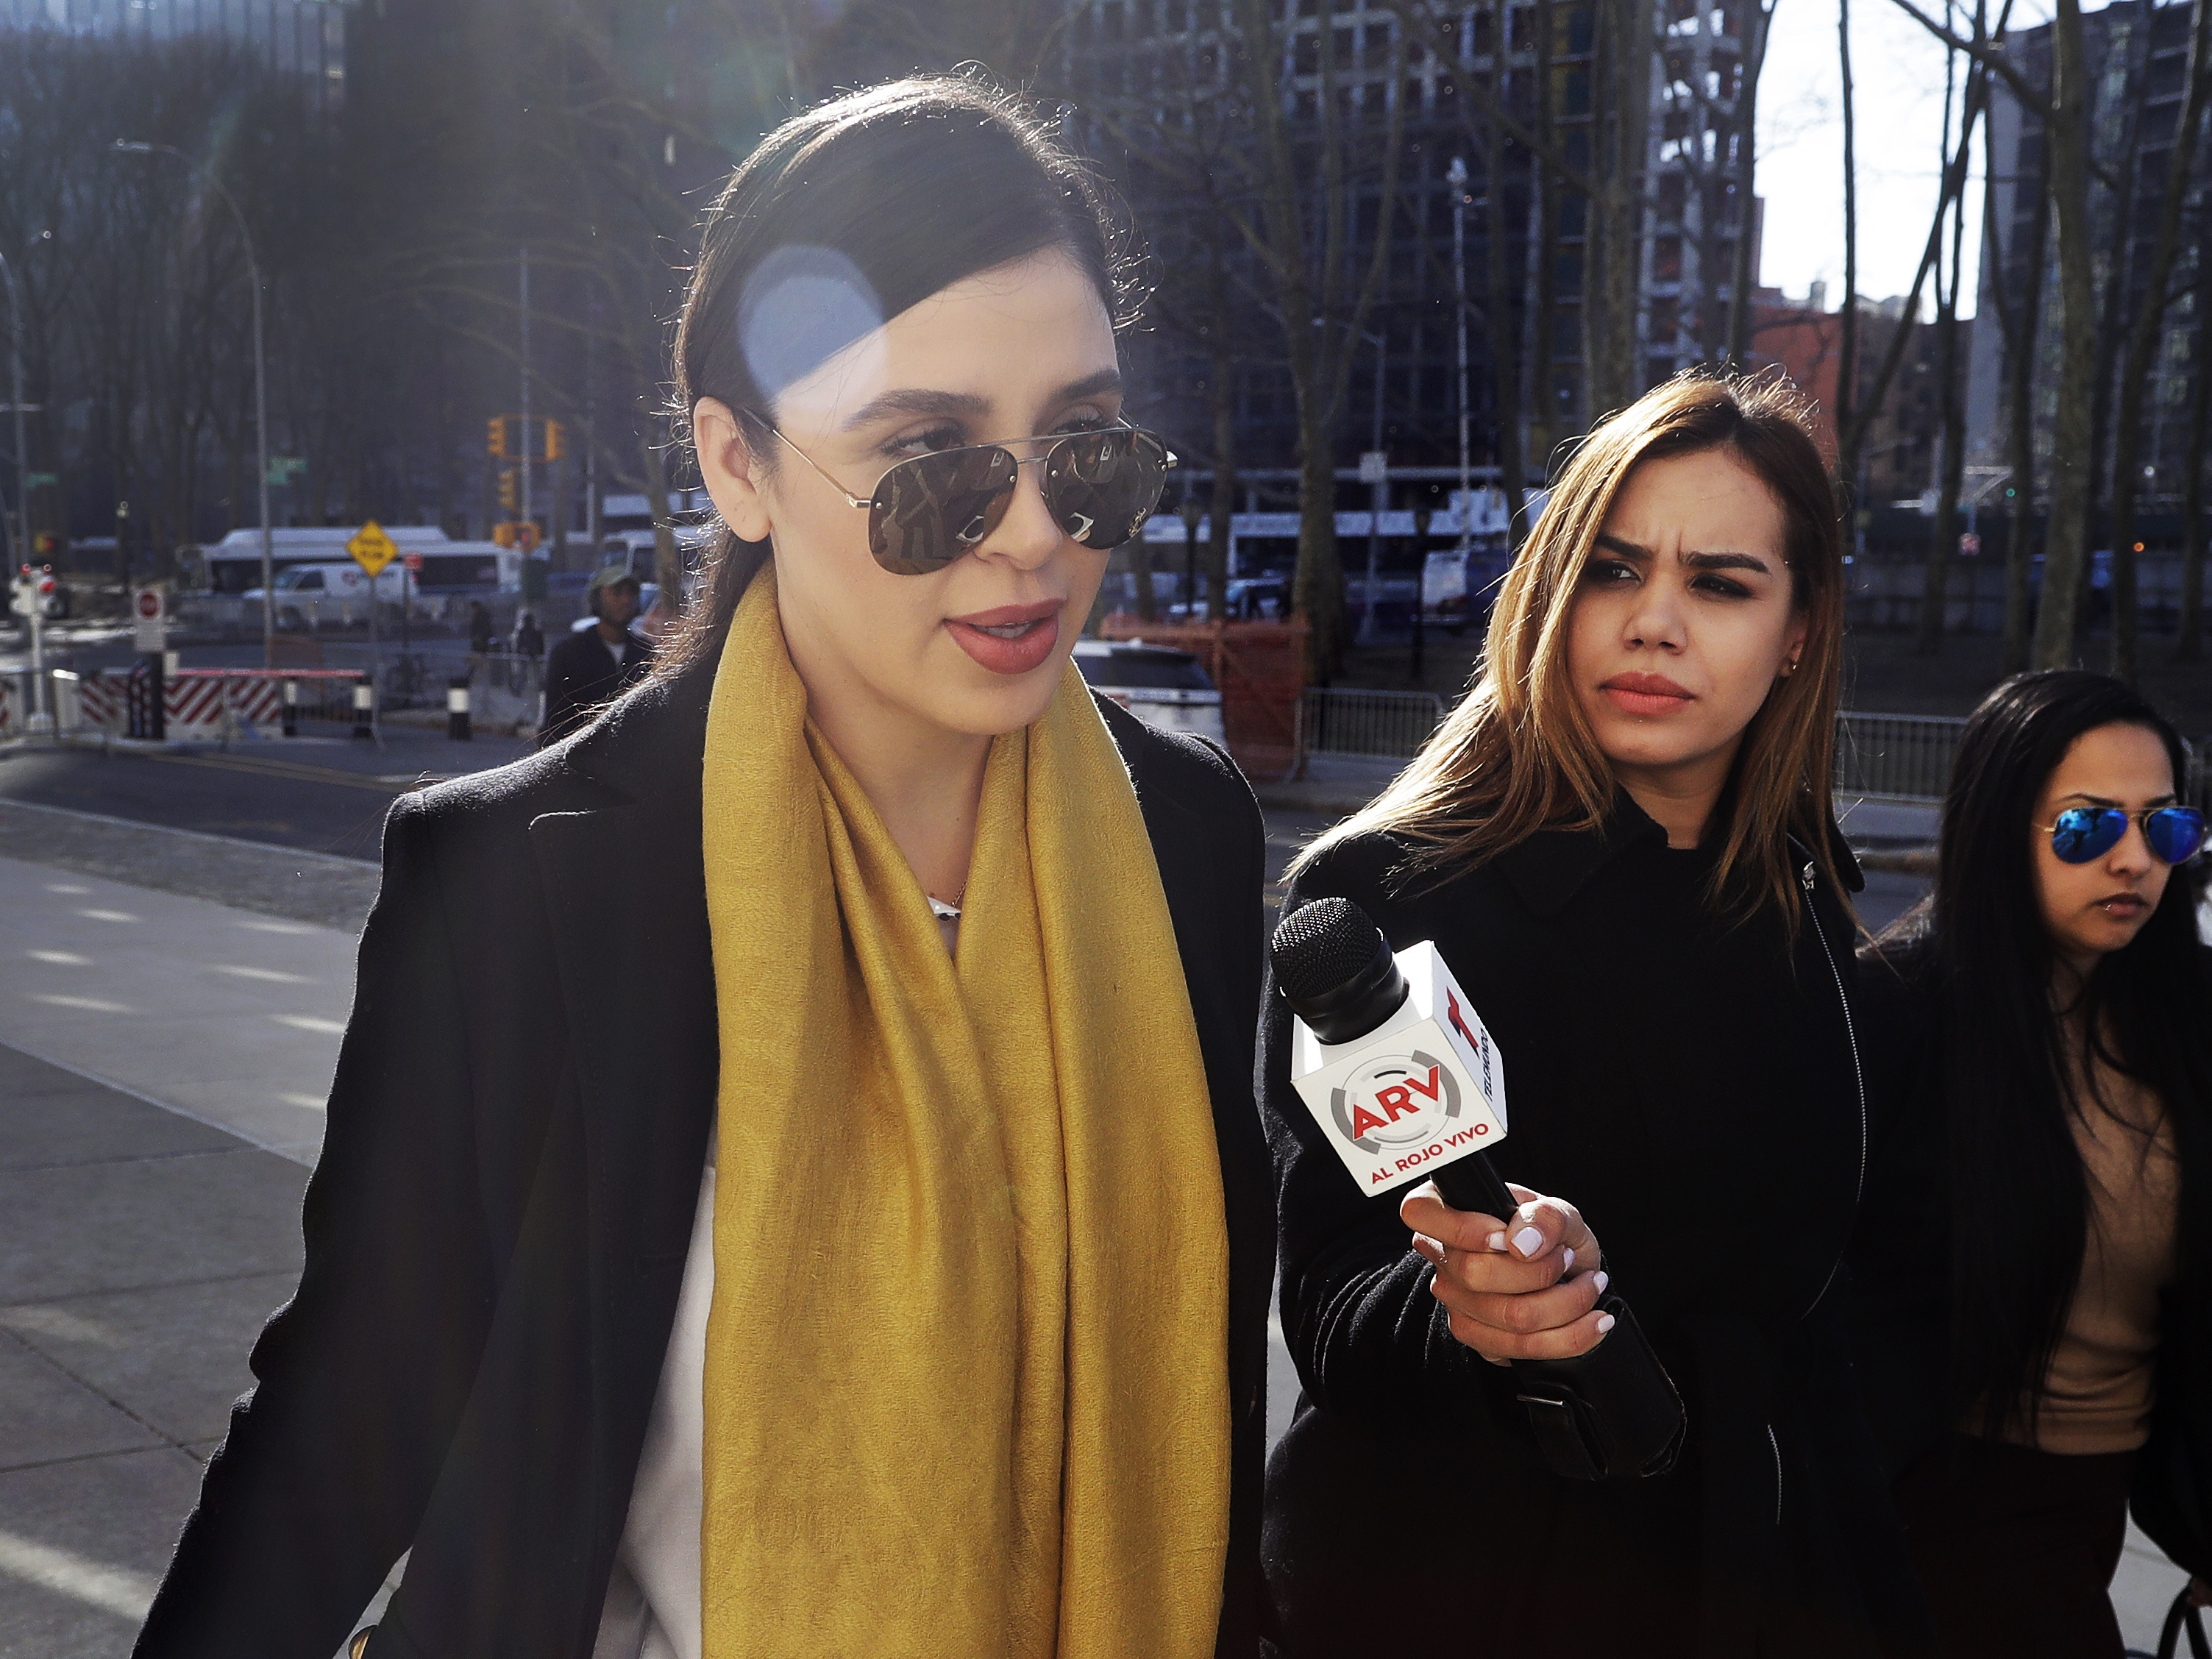 Wife Of 'El Chapo' Arrested In U.S. On Drug Charges : NPR